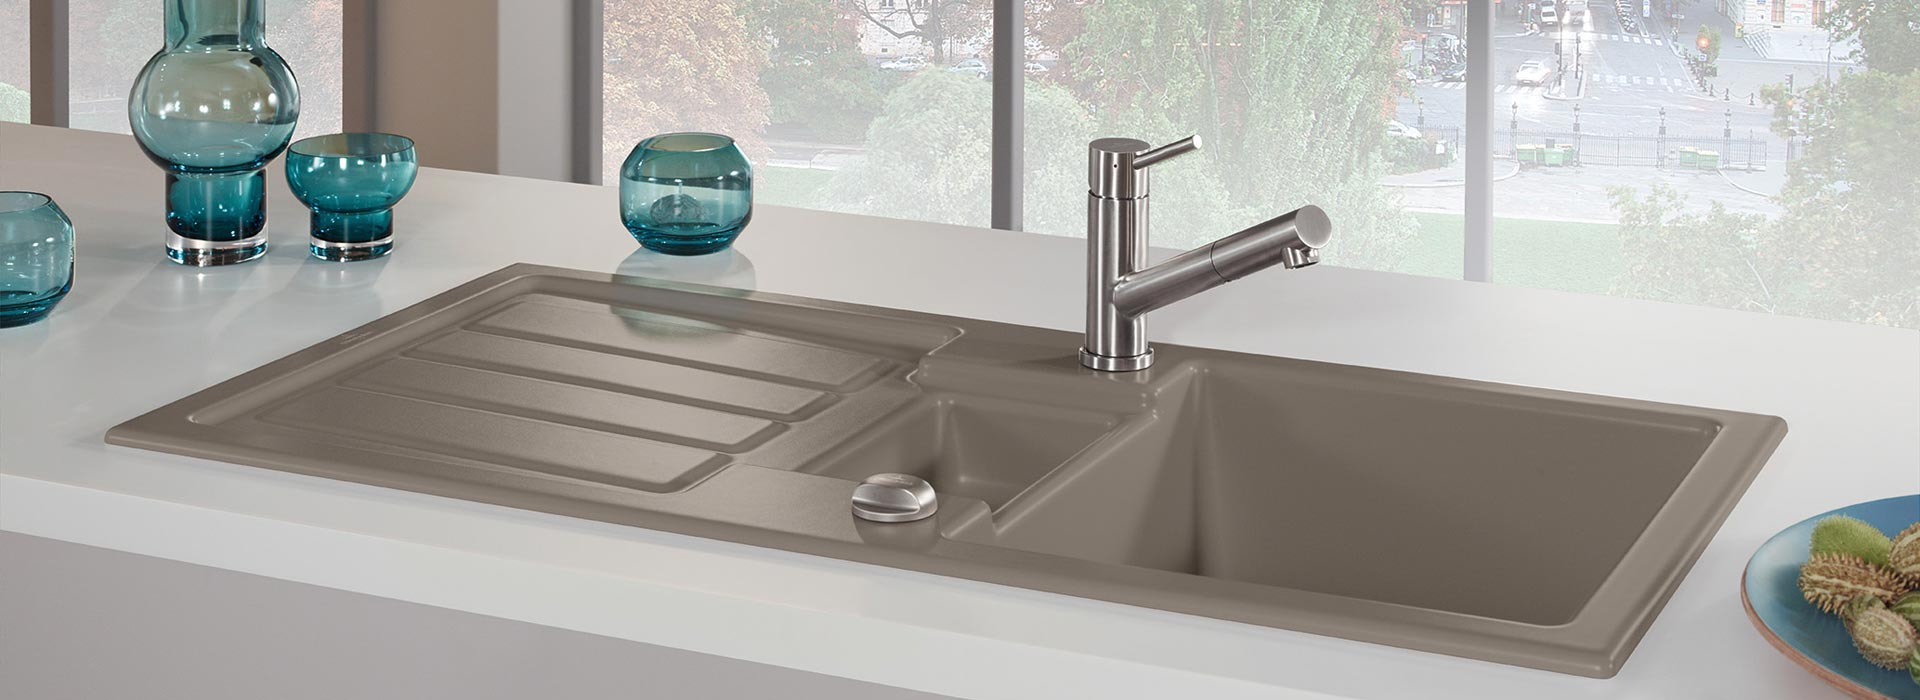 Built-in sink in outstanding quality from Villeroy & Boch